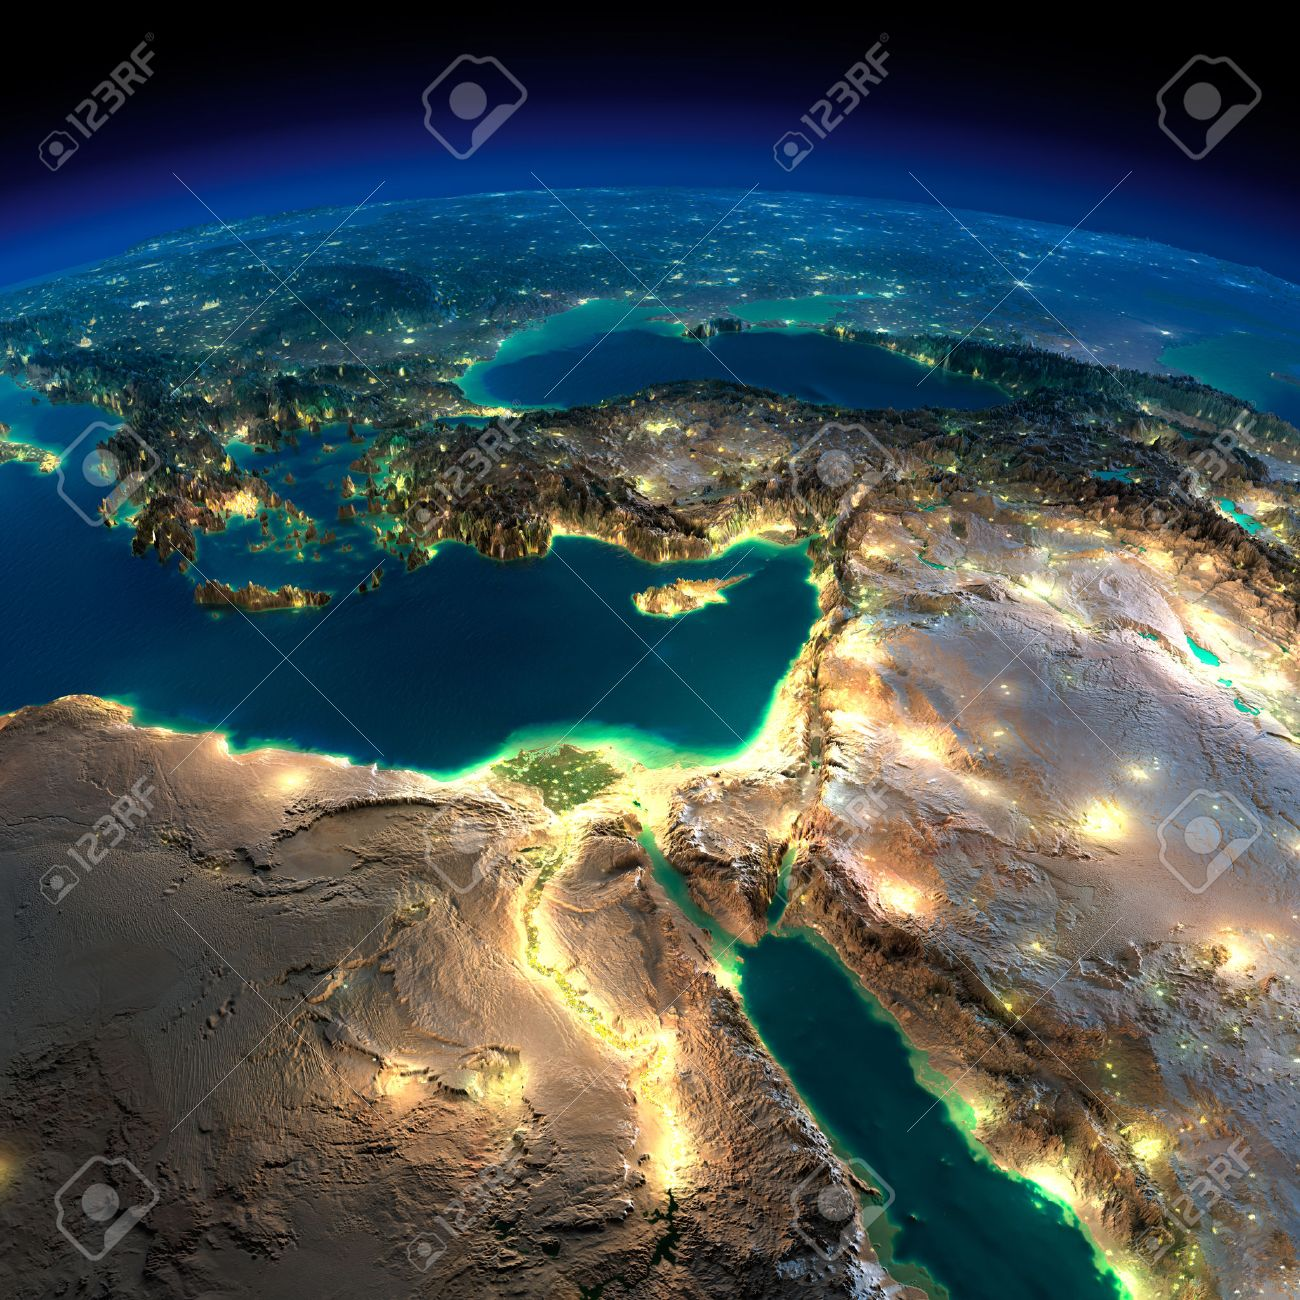 Highly detailed Earth, illuminated by moonlight. The glow of cities sheds light on the detailed exaggerated terrain. Night Earth. Africa and Middle East. - 26504260